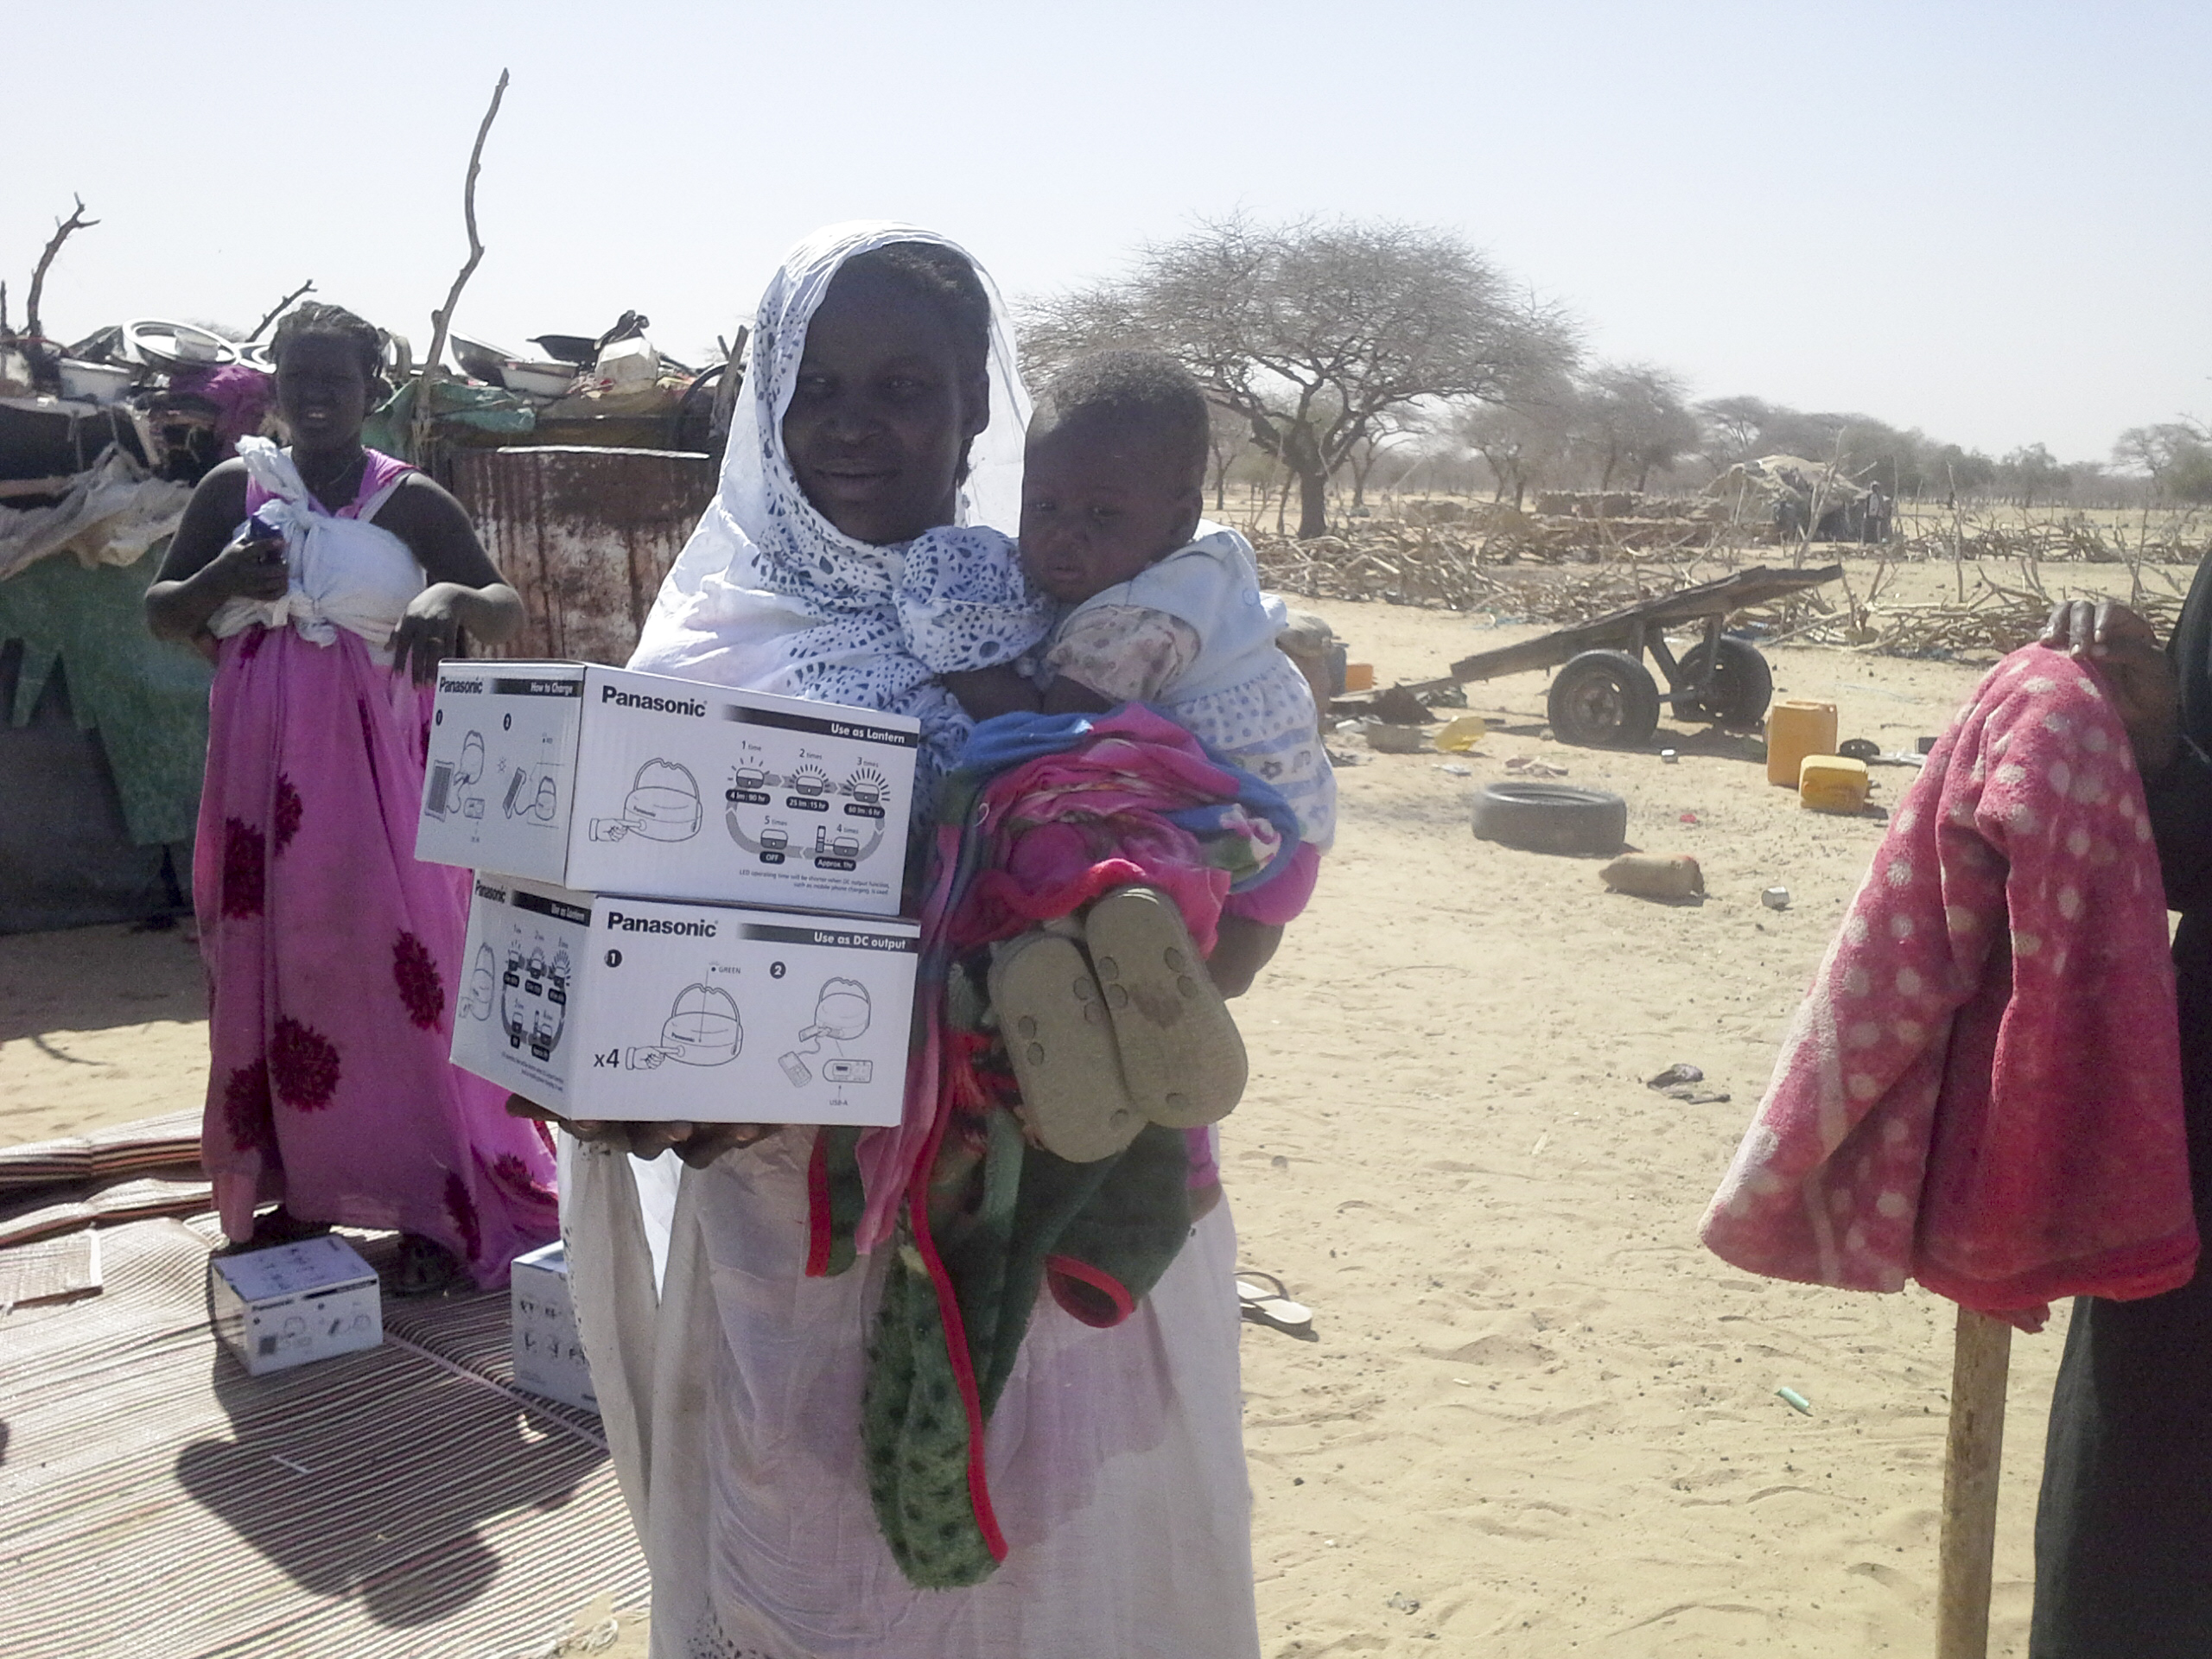 A mother and child receive two Panasonic solar lanterns in a remote region of Mauritania. These solar lanterns allow women to spend the night without fear of danger. Photo: IOM